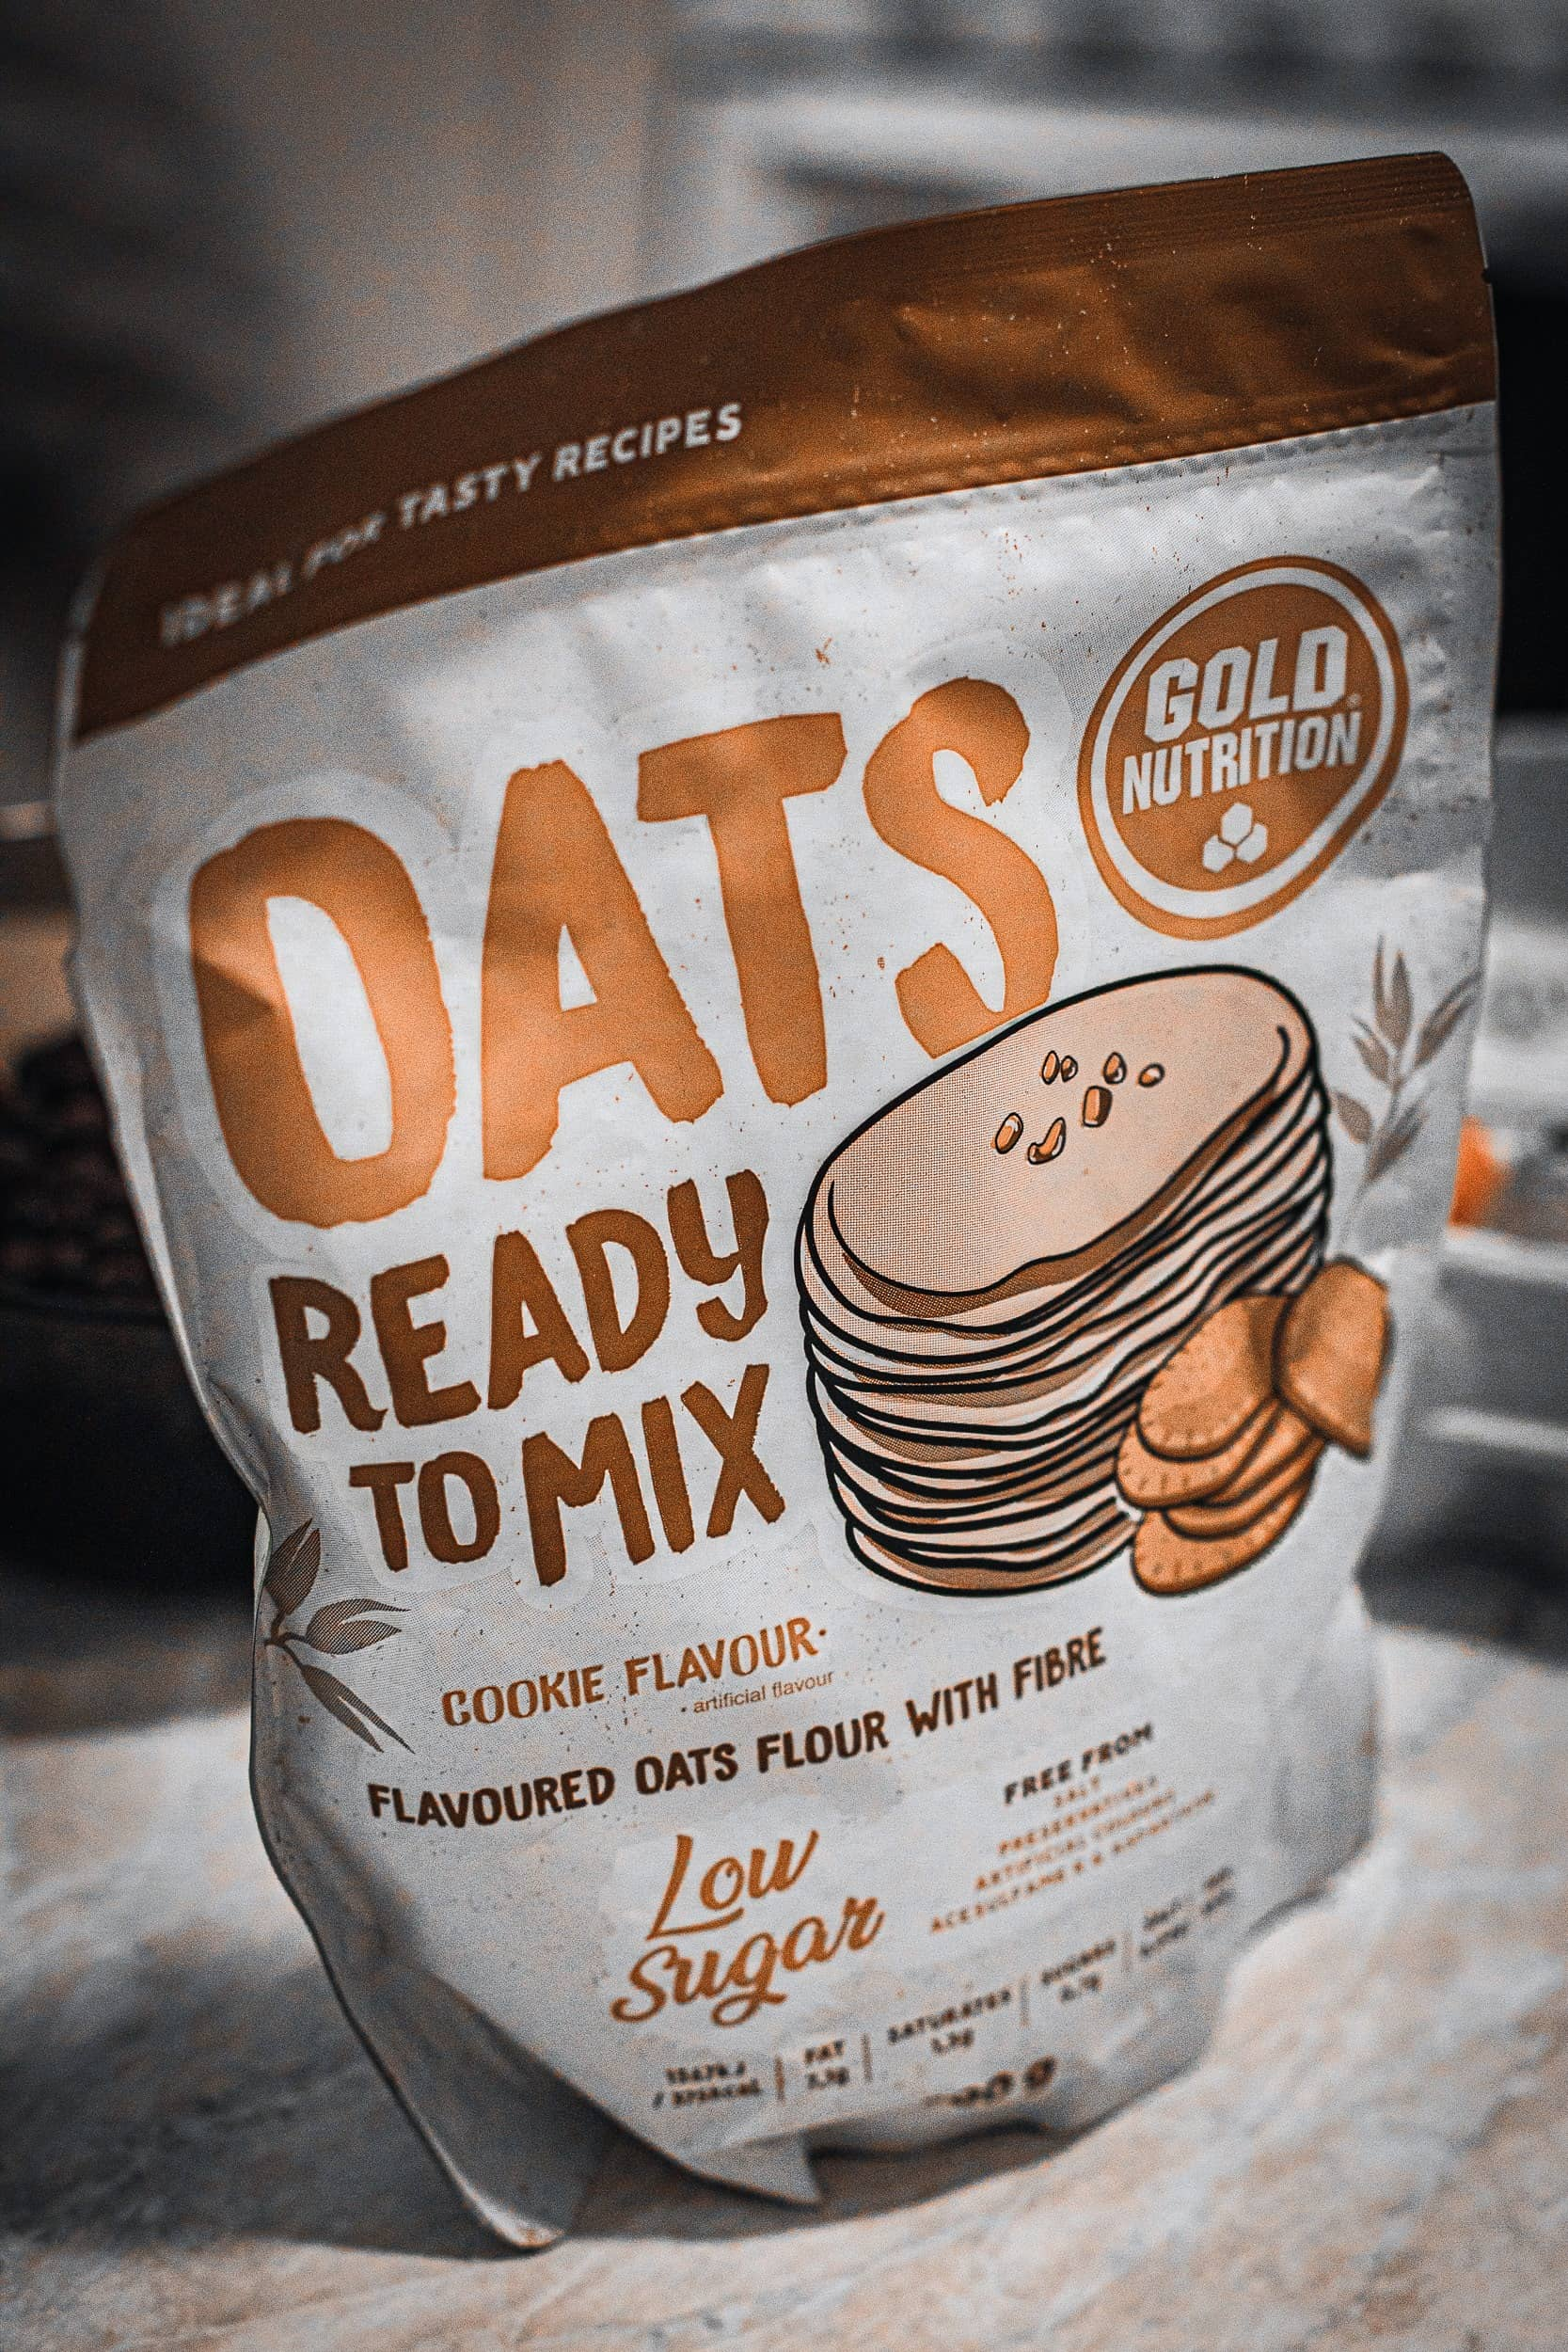 Gold Nutrtion Oats Ready to Mix Cookies